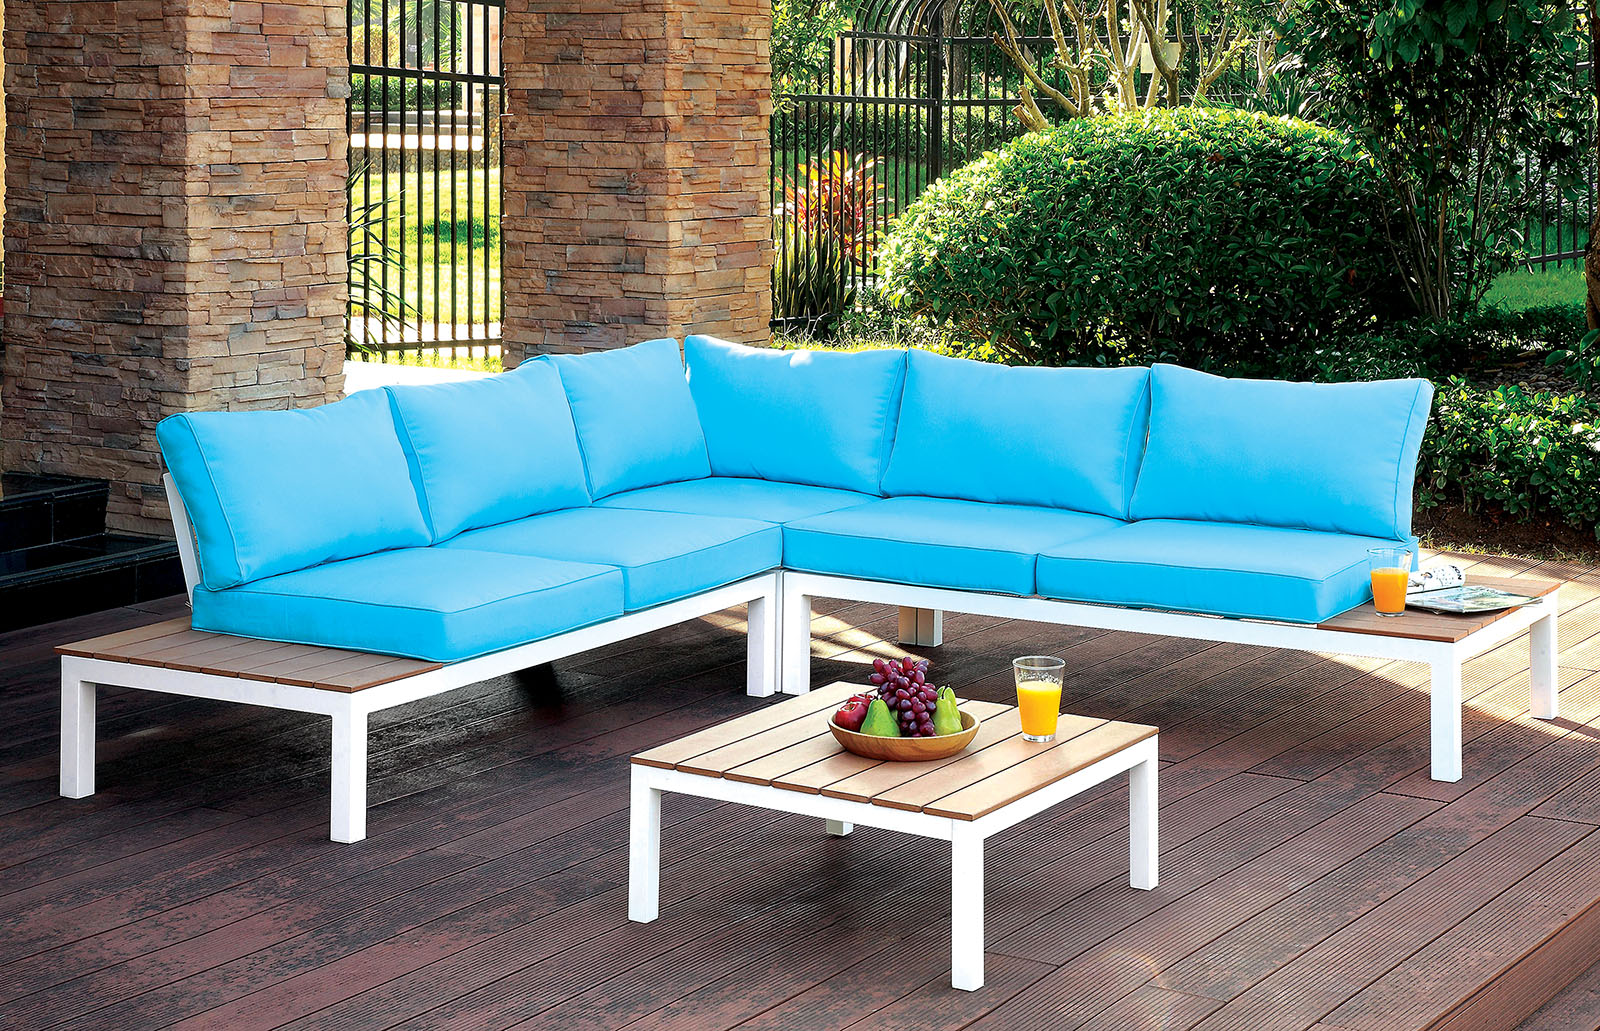 Os2580 Outdoor Patio Sectional Blue And White Los Angeles